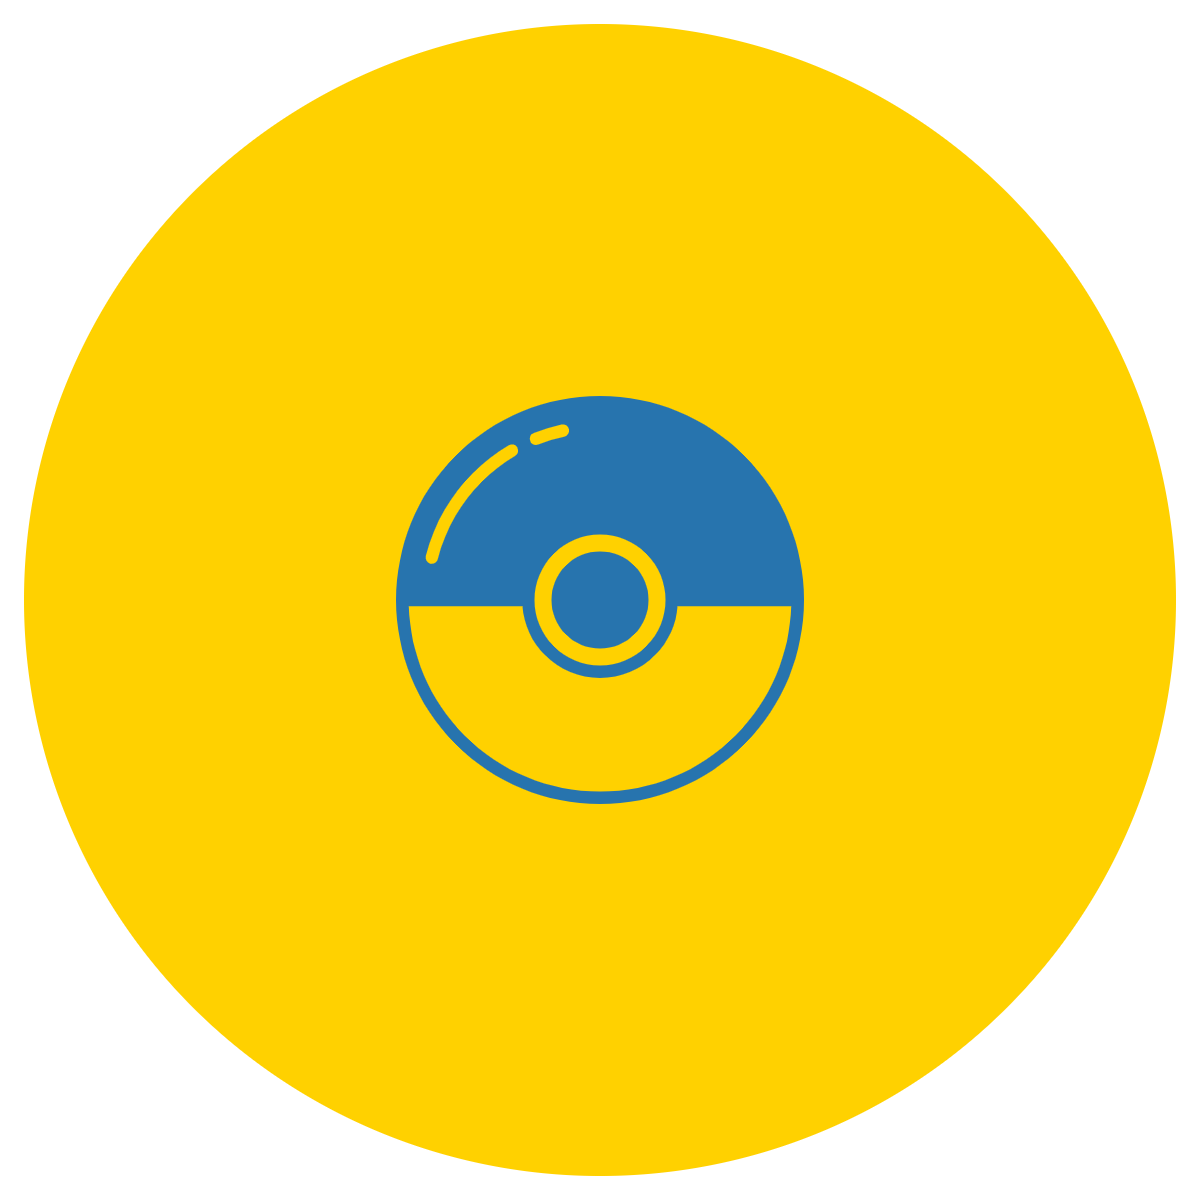 Image of a Pokeball from the manga called Pokemon.